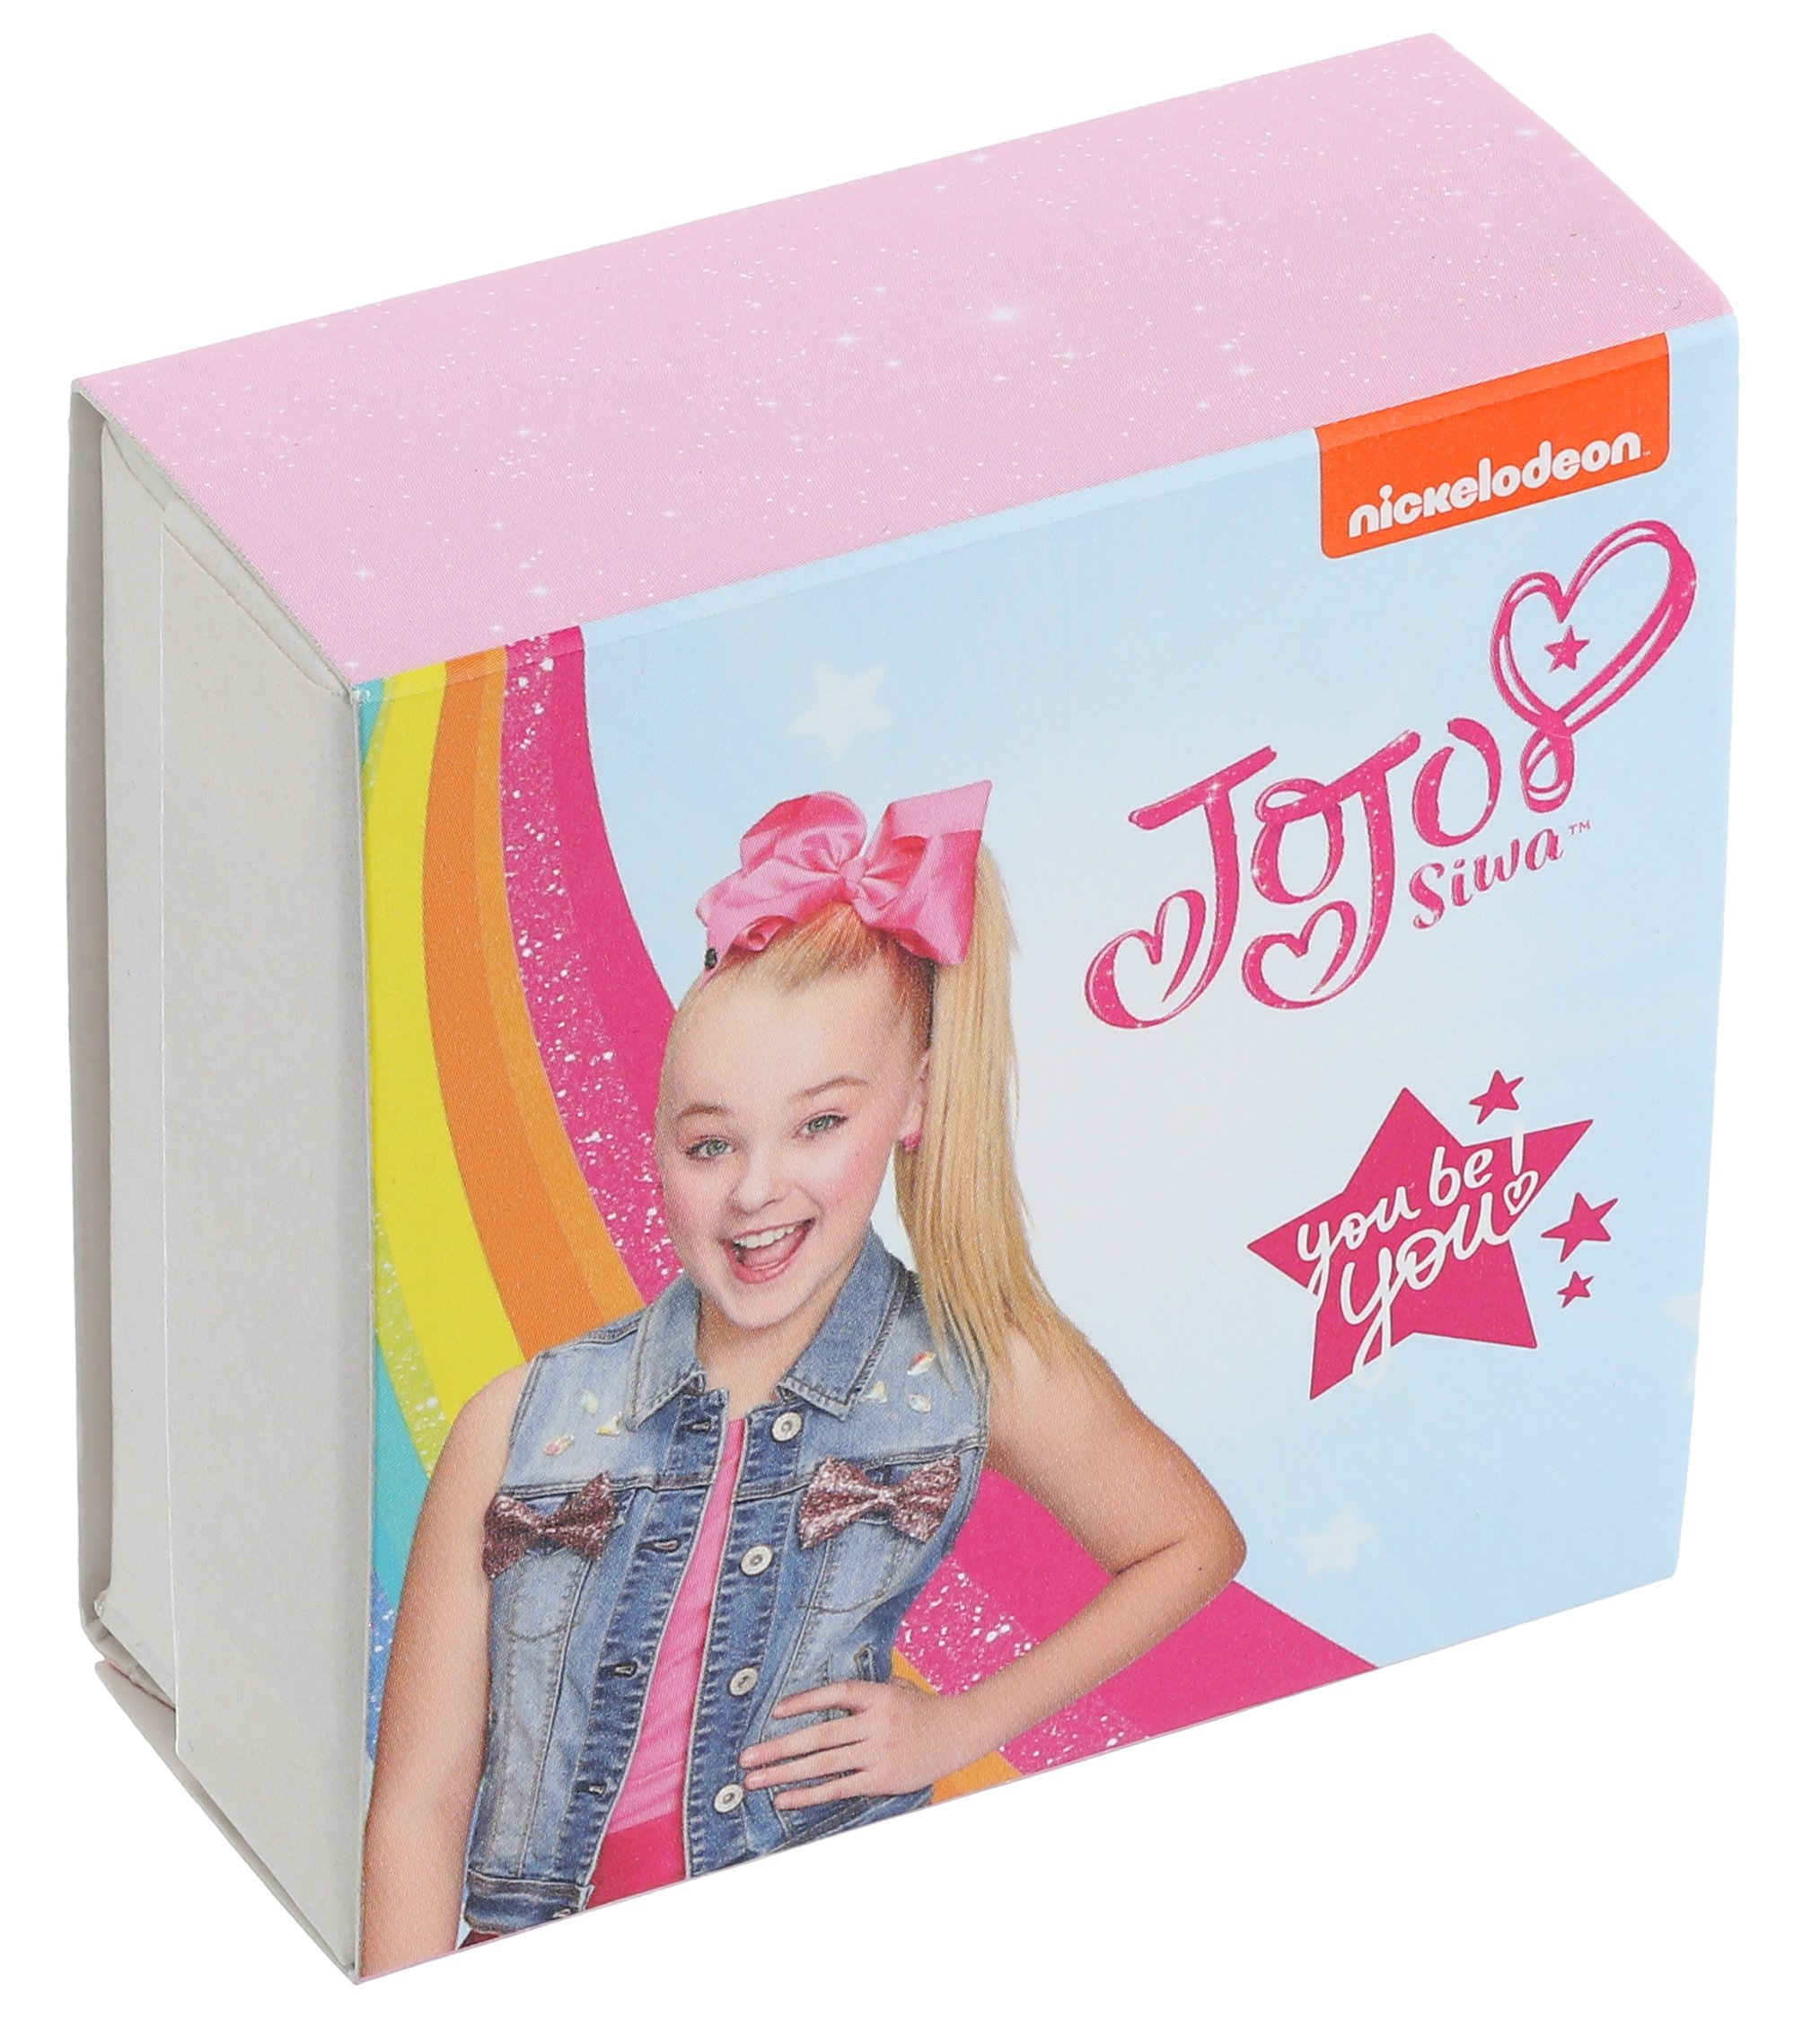 Nickelodeon Girls Jojo Siwa Silver Plated Bow & Cupcake Mix Match Stud Earrings, Multi by Nickelodeon (Image #3)